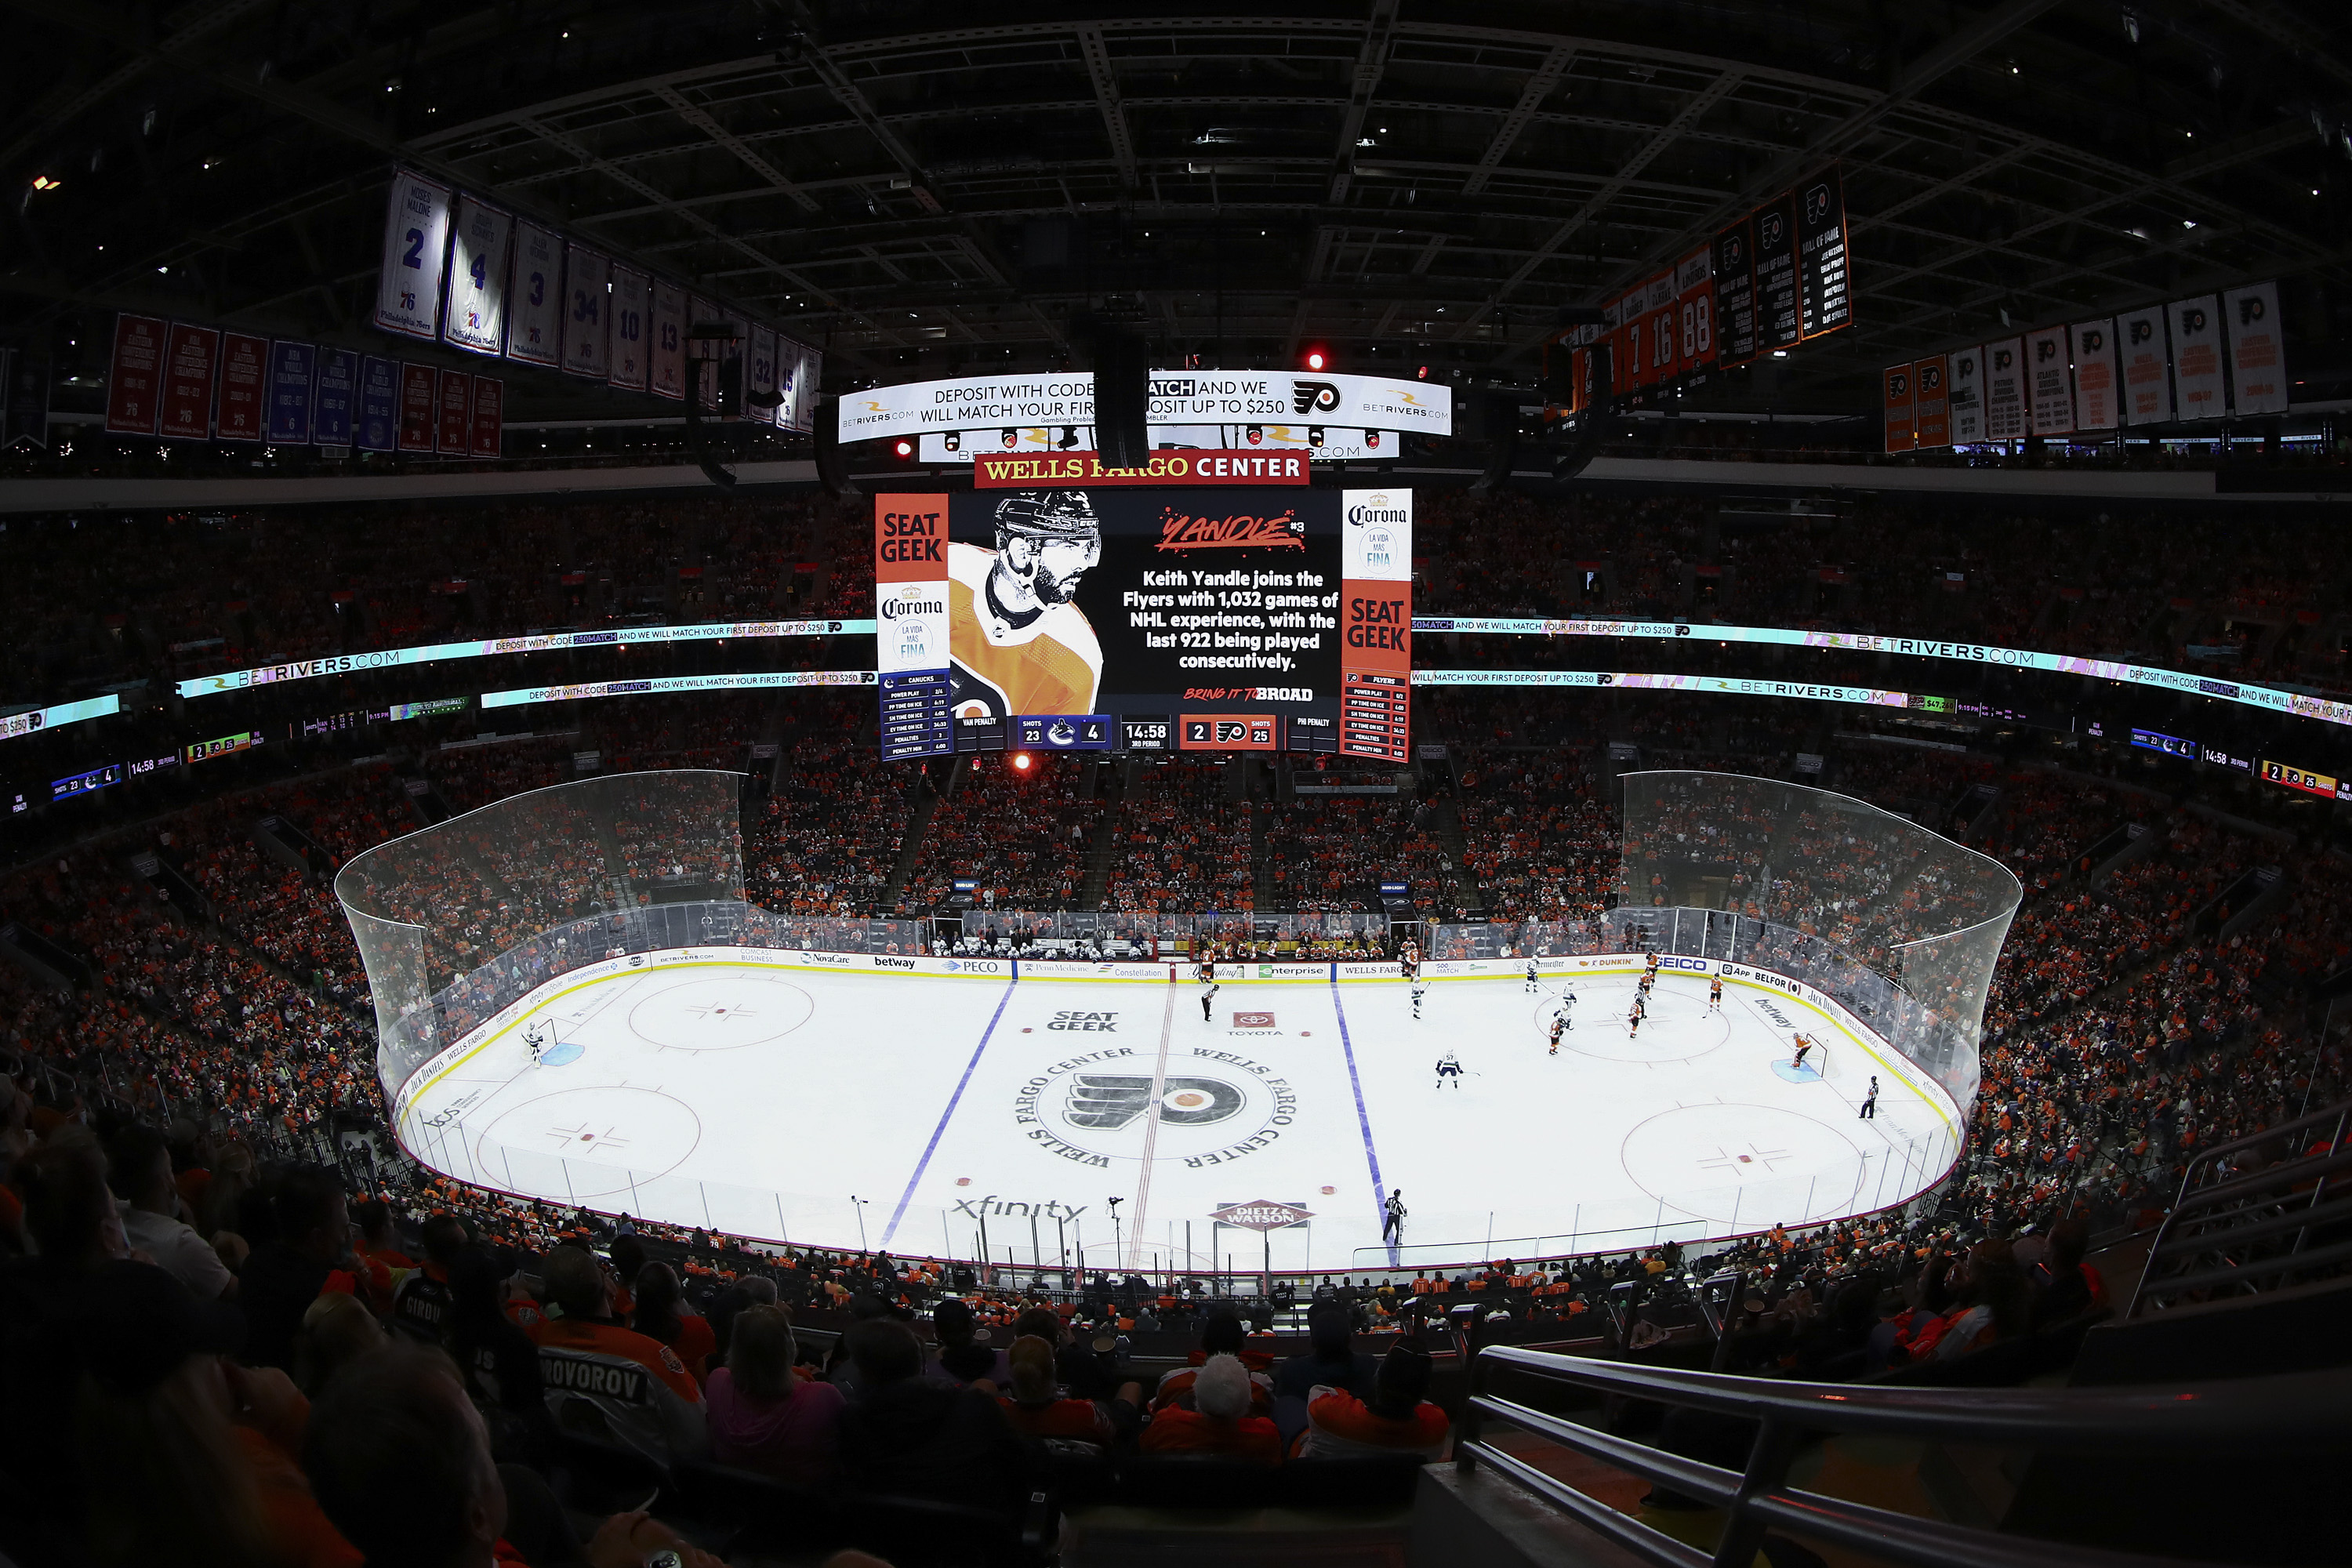 A general view during a game between the Vancouver Canucks and Philadelphia Flyers at Wells Fargo Center on October 15, 2021 in Philadelphia, Pennsylvania.